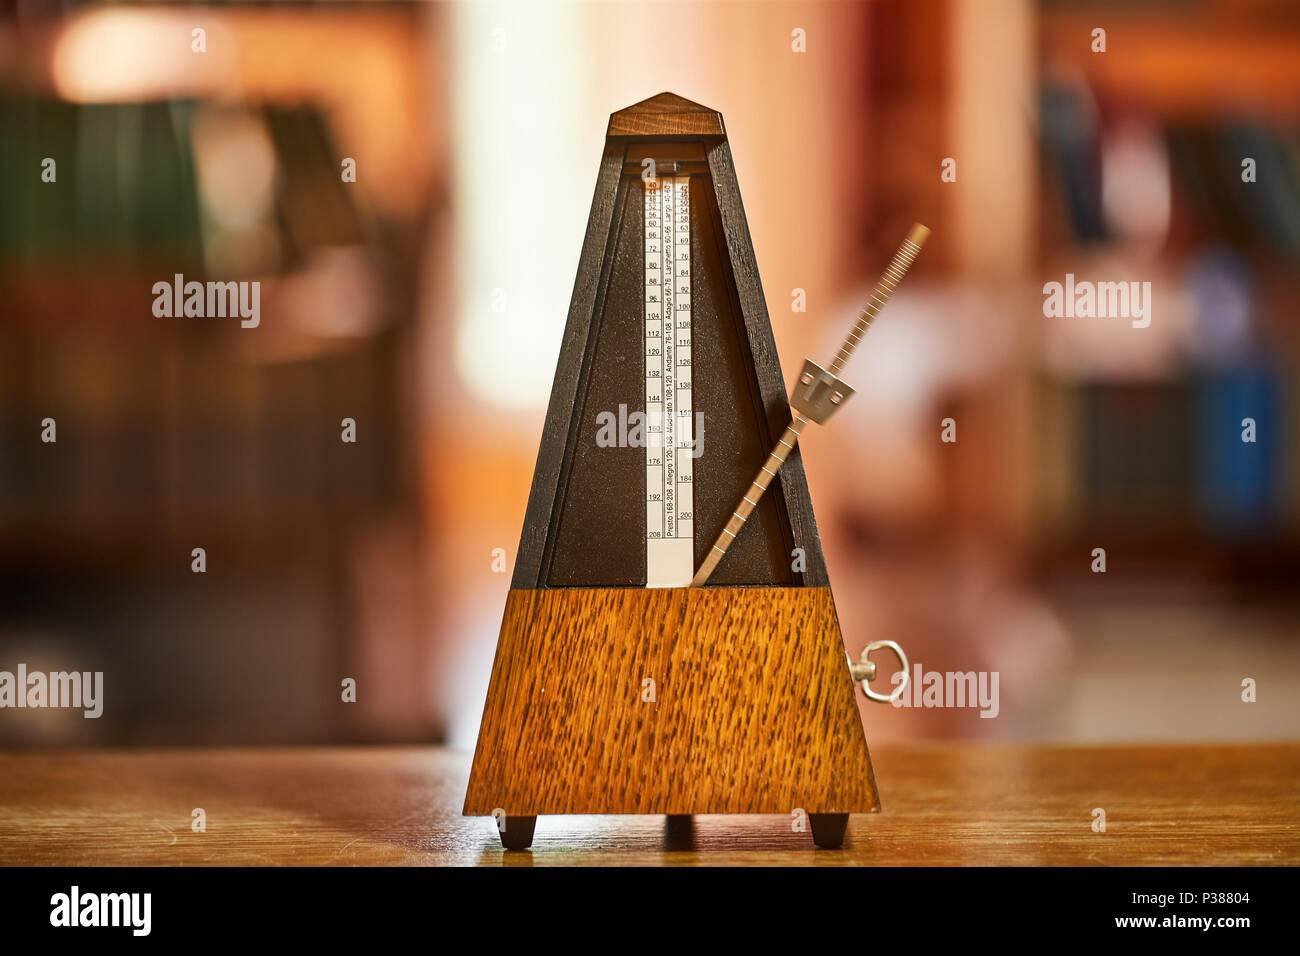 Old Classic Metronome - Stock Image